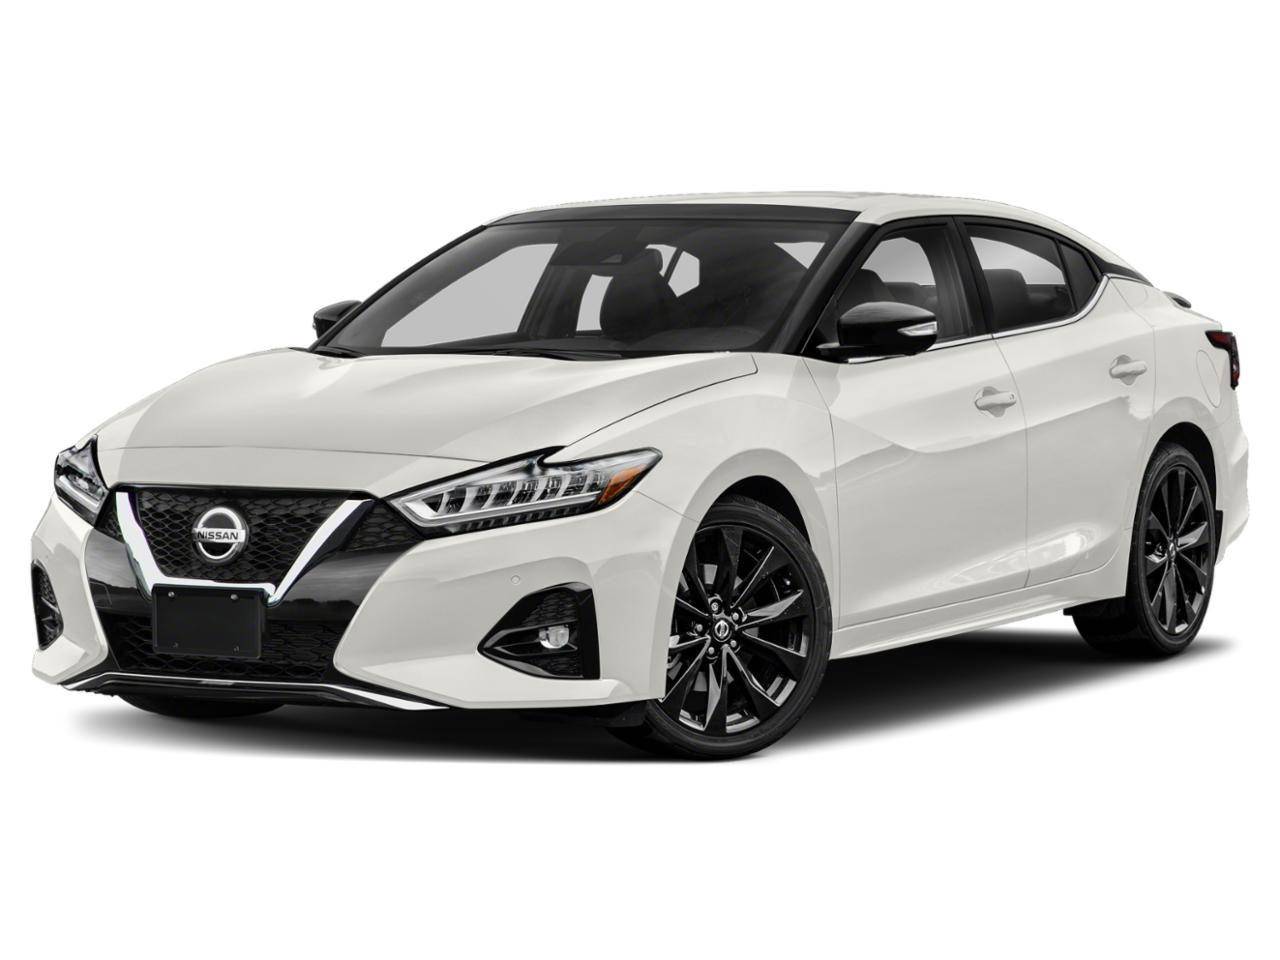 New Nissan Maxima Vehicles For Sale Greenville Nissan